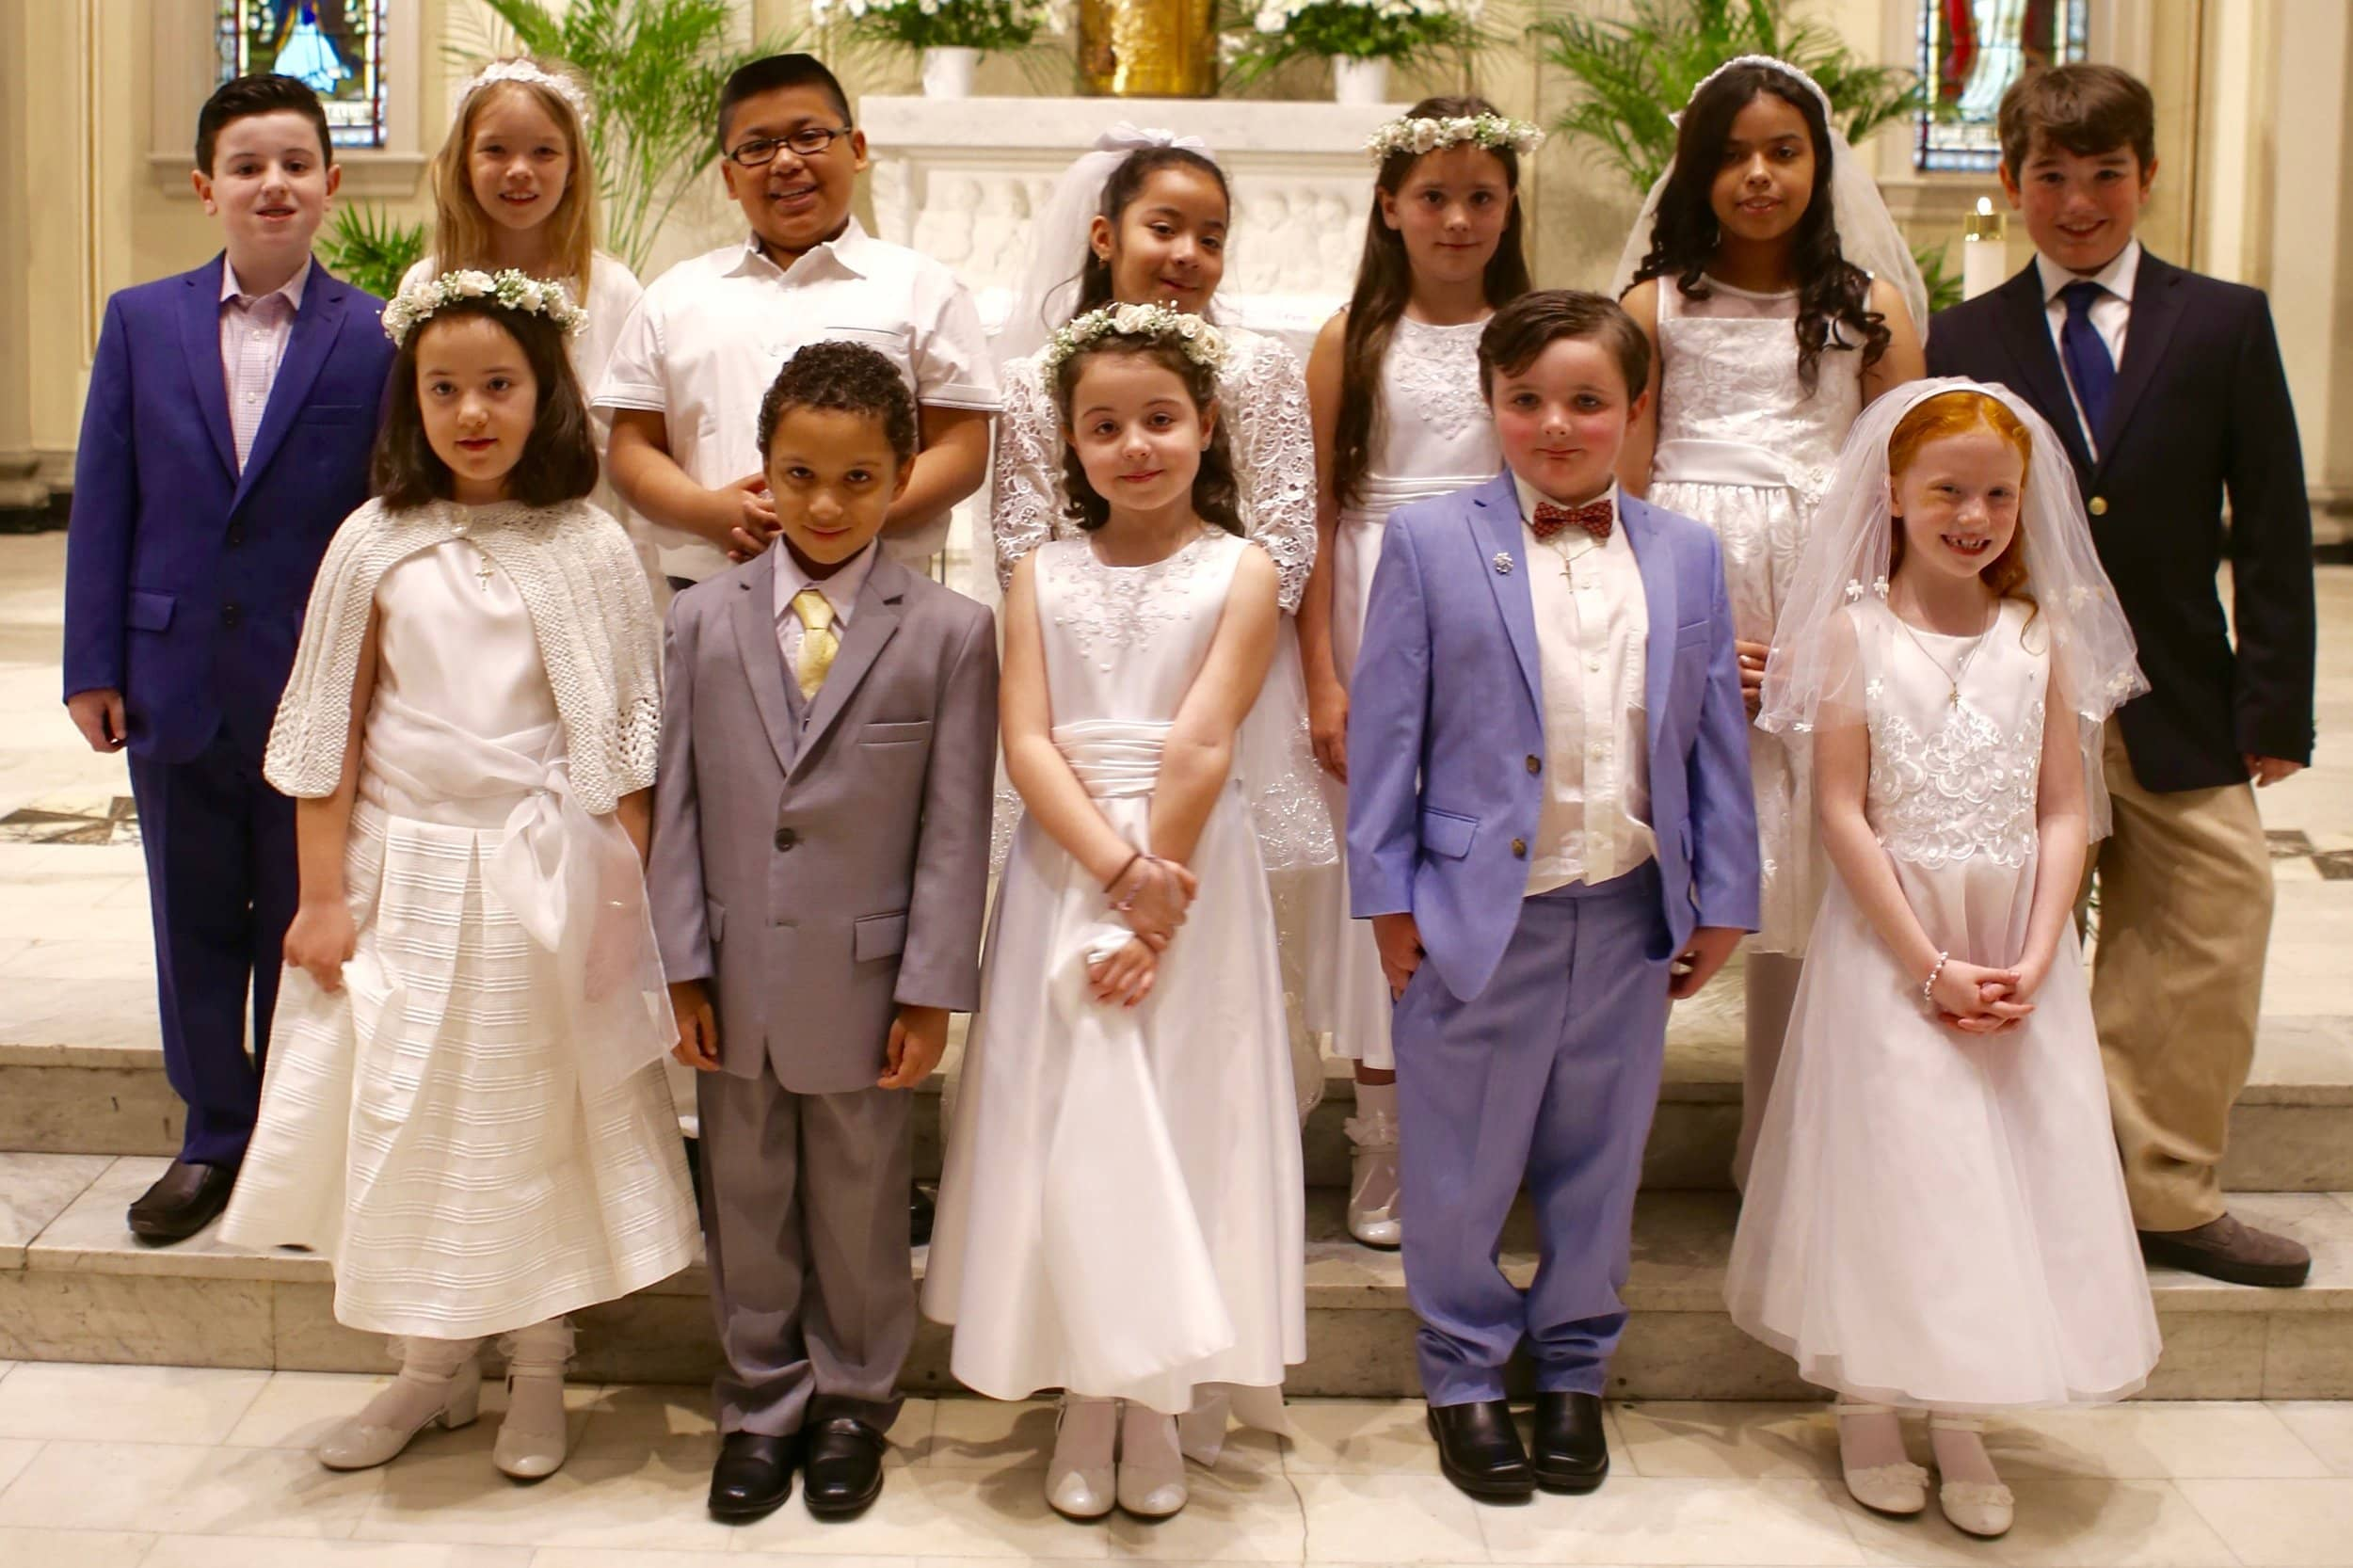 first-communion-kids-youth-st-francis-de-sales-church-new-york-city.jpg